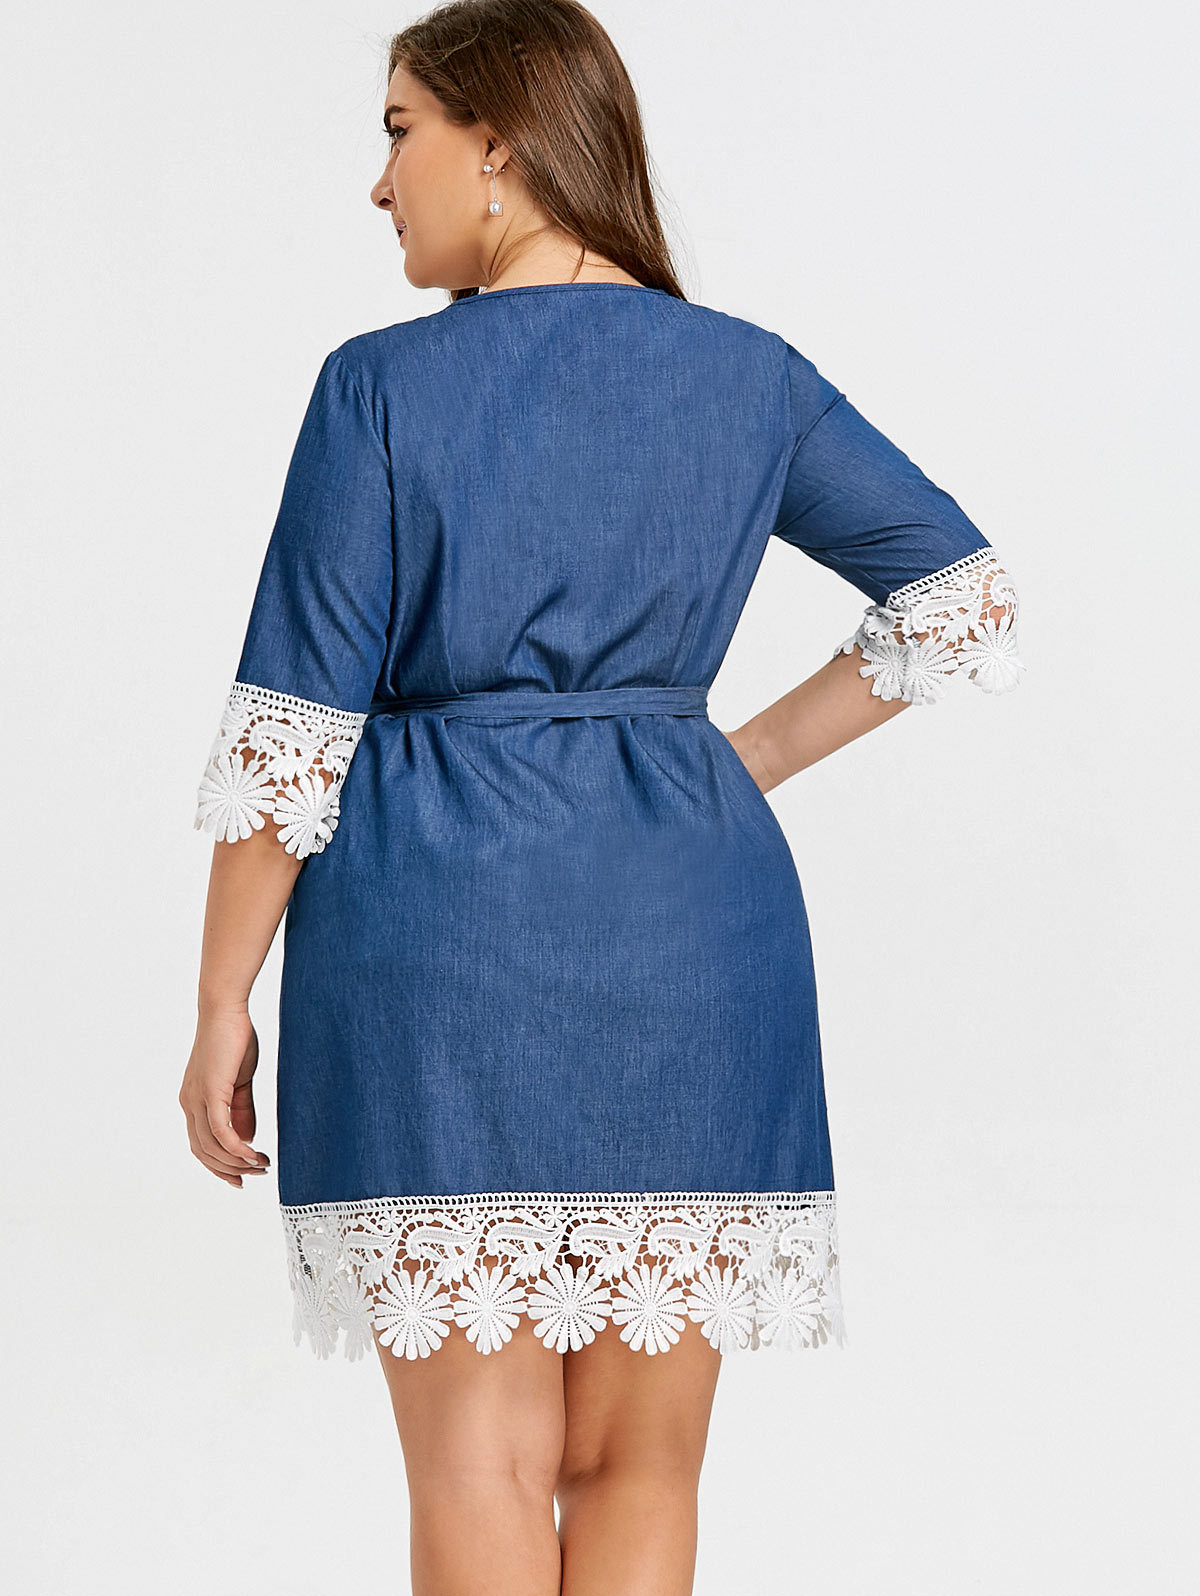 5a0023edc7 Soft Denim Dress Big Size 2018 Autumn Women Half Sleeve Lace Hem Loose Blue  Tunic Jeans Dress Plus Size Clothing XL 5XL-in Dresses from Women s  Clothing on ...